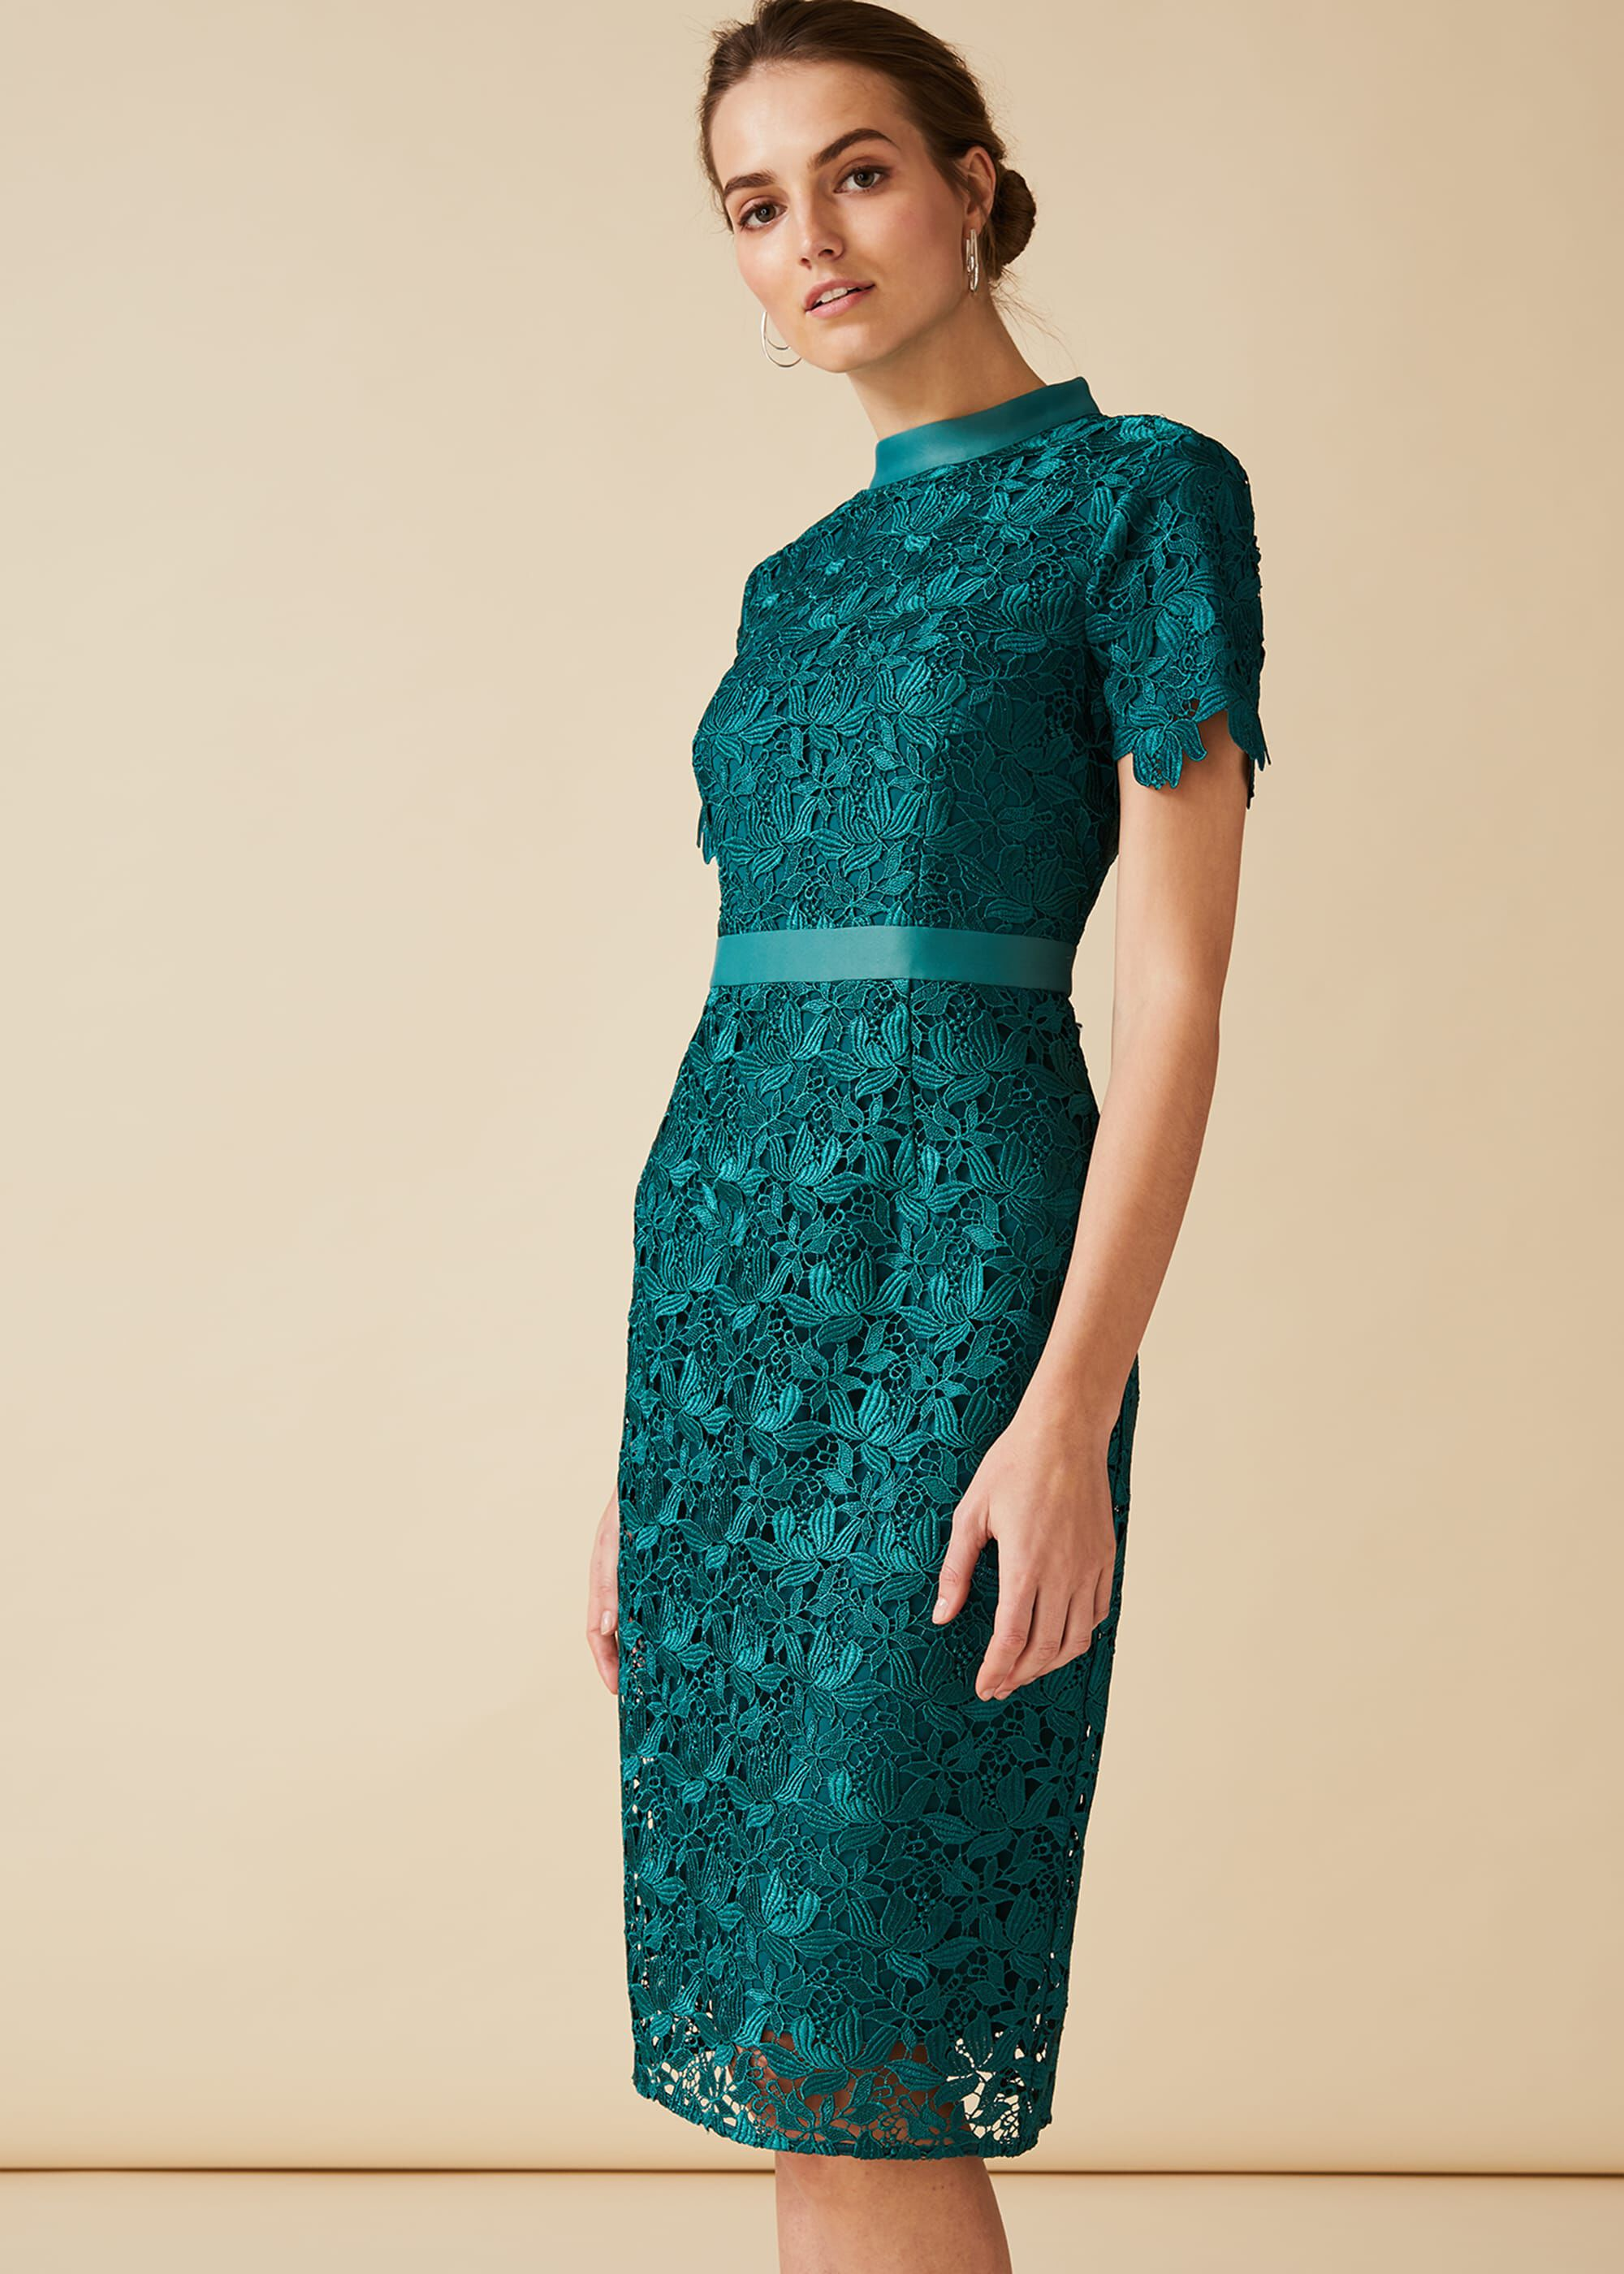 Phase Eight Marietta Guipure Lace Dress, Green, Dresses, Occasion Dress